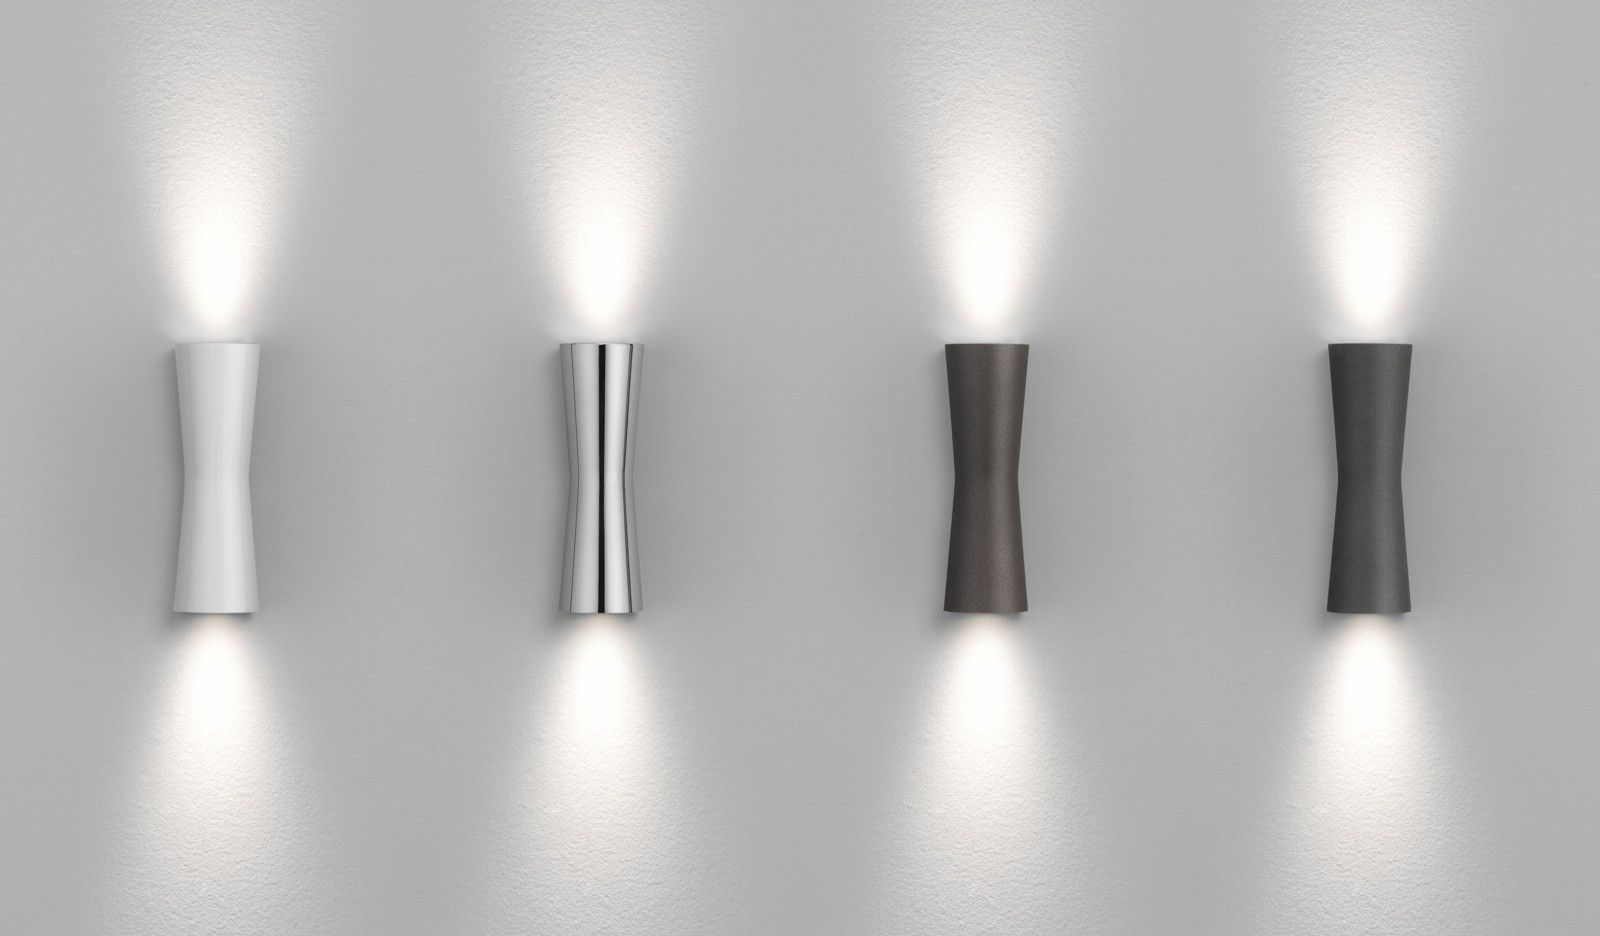 Clessidra Modern Up Down Contemporary Wall Spot Light For Indoor Or Outdoor Lighting Flos Shop Wall Lighting Design Wall Lights Modern Wall Sconces